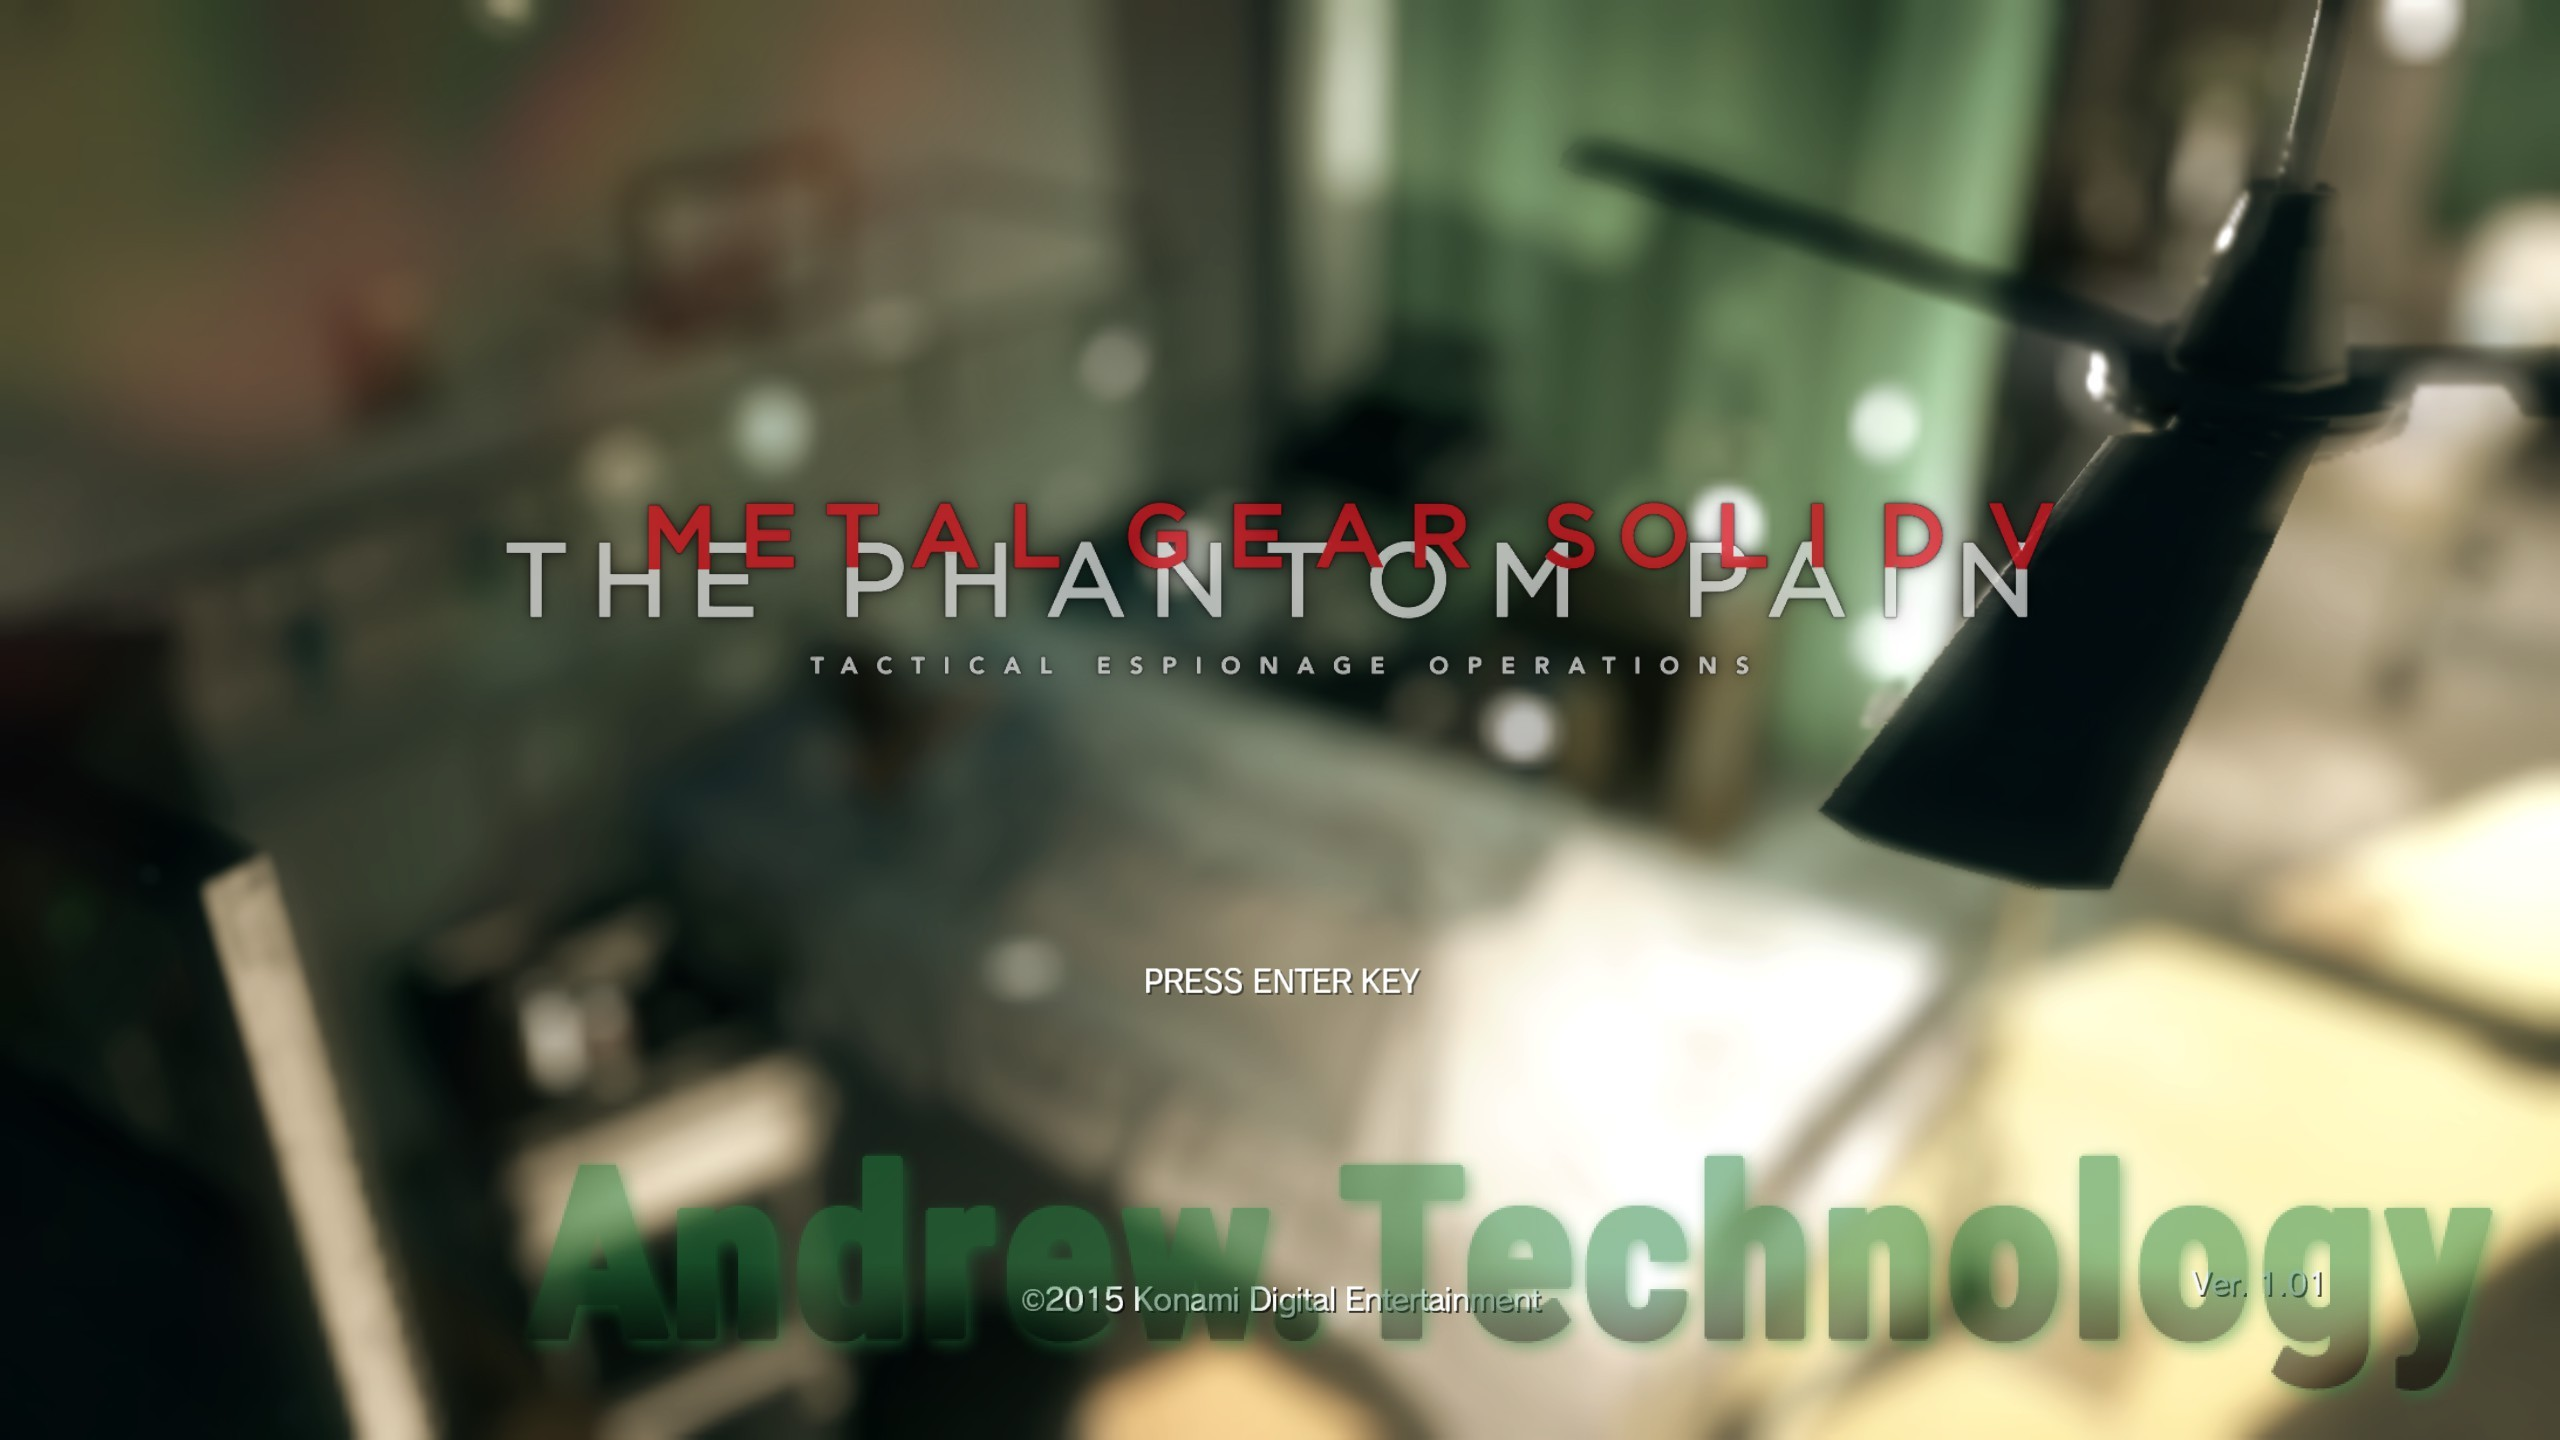 Metal Gear Solid V: The Phantom Pain Tactical Espinogage Opertions title press enter key